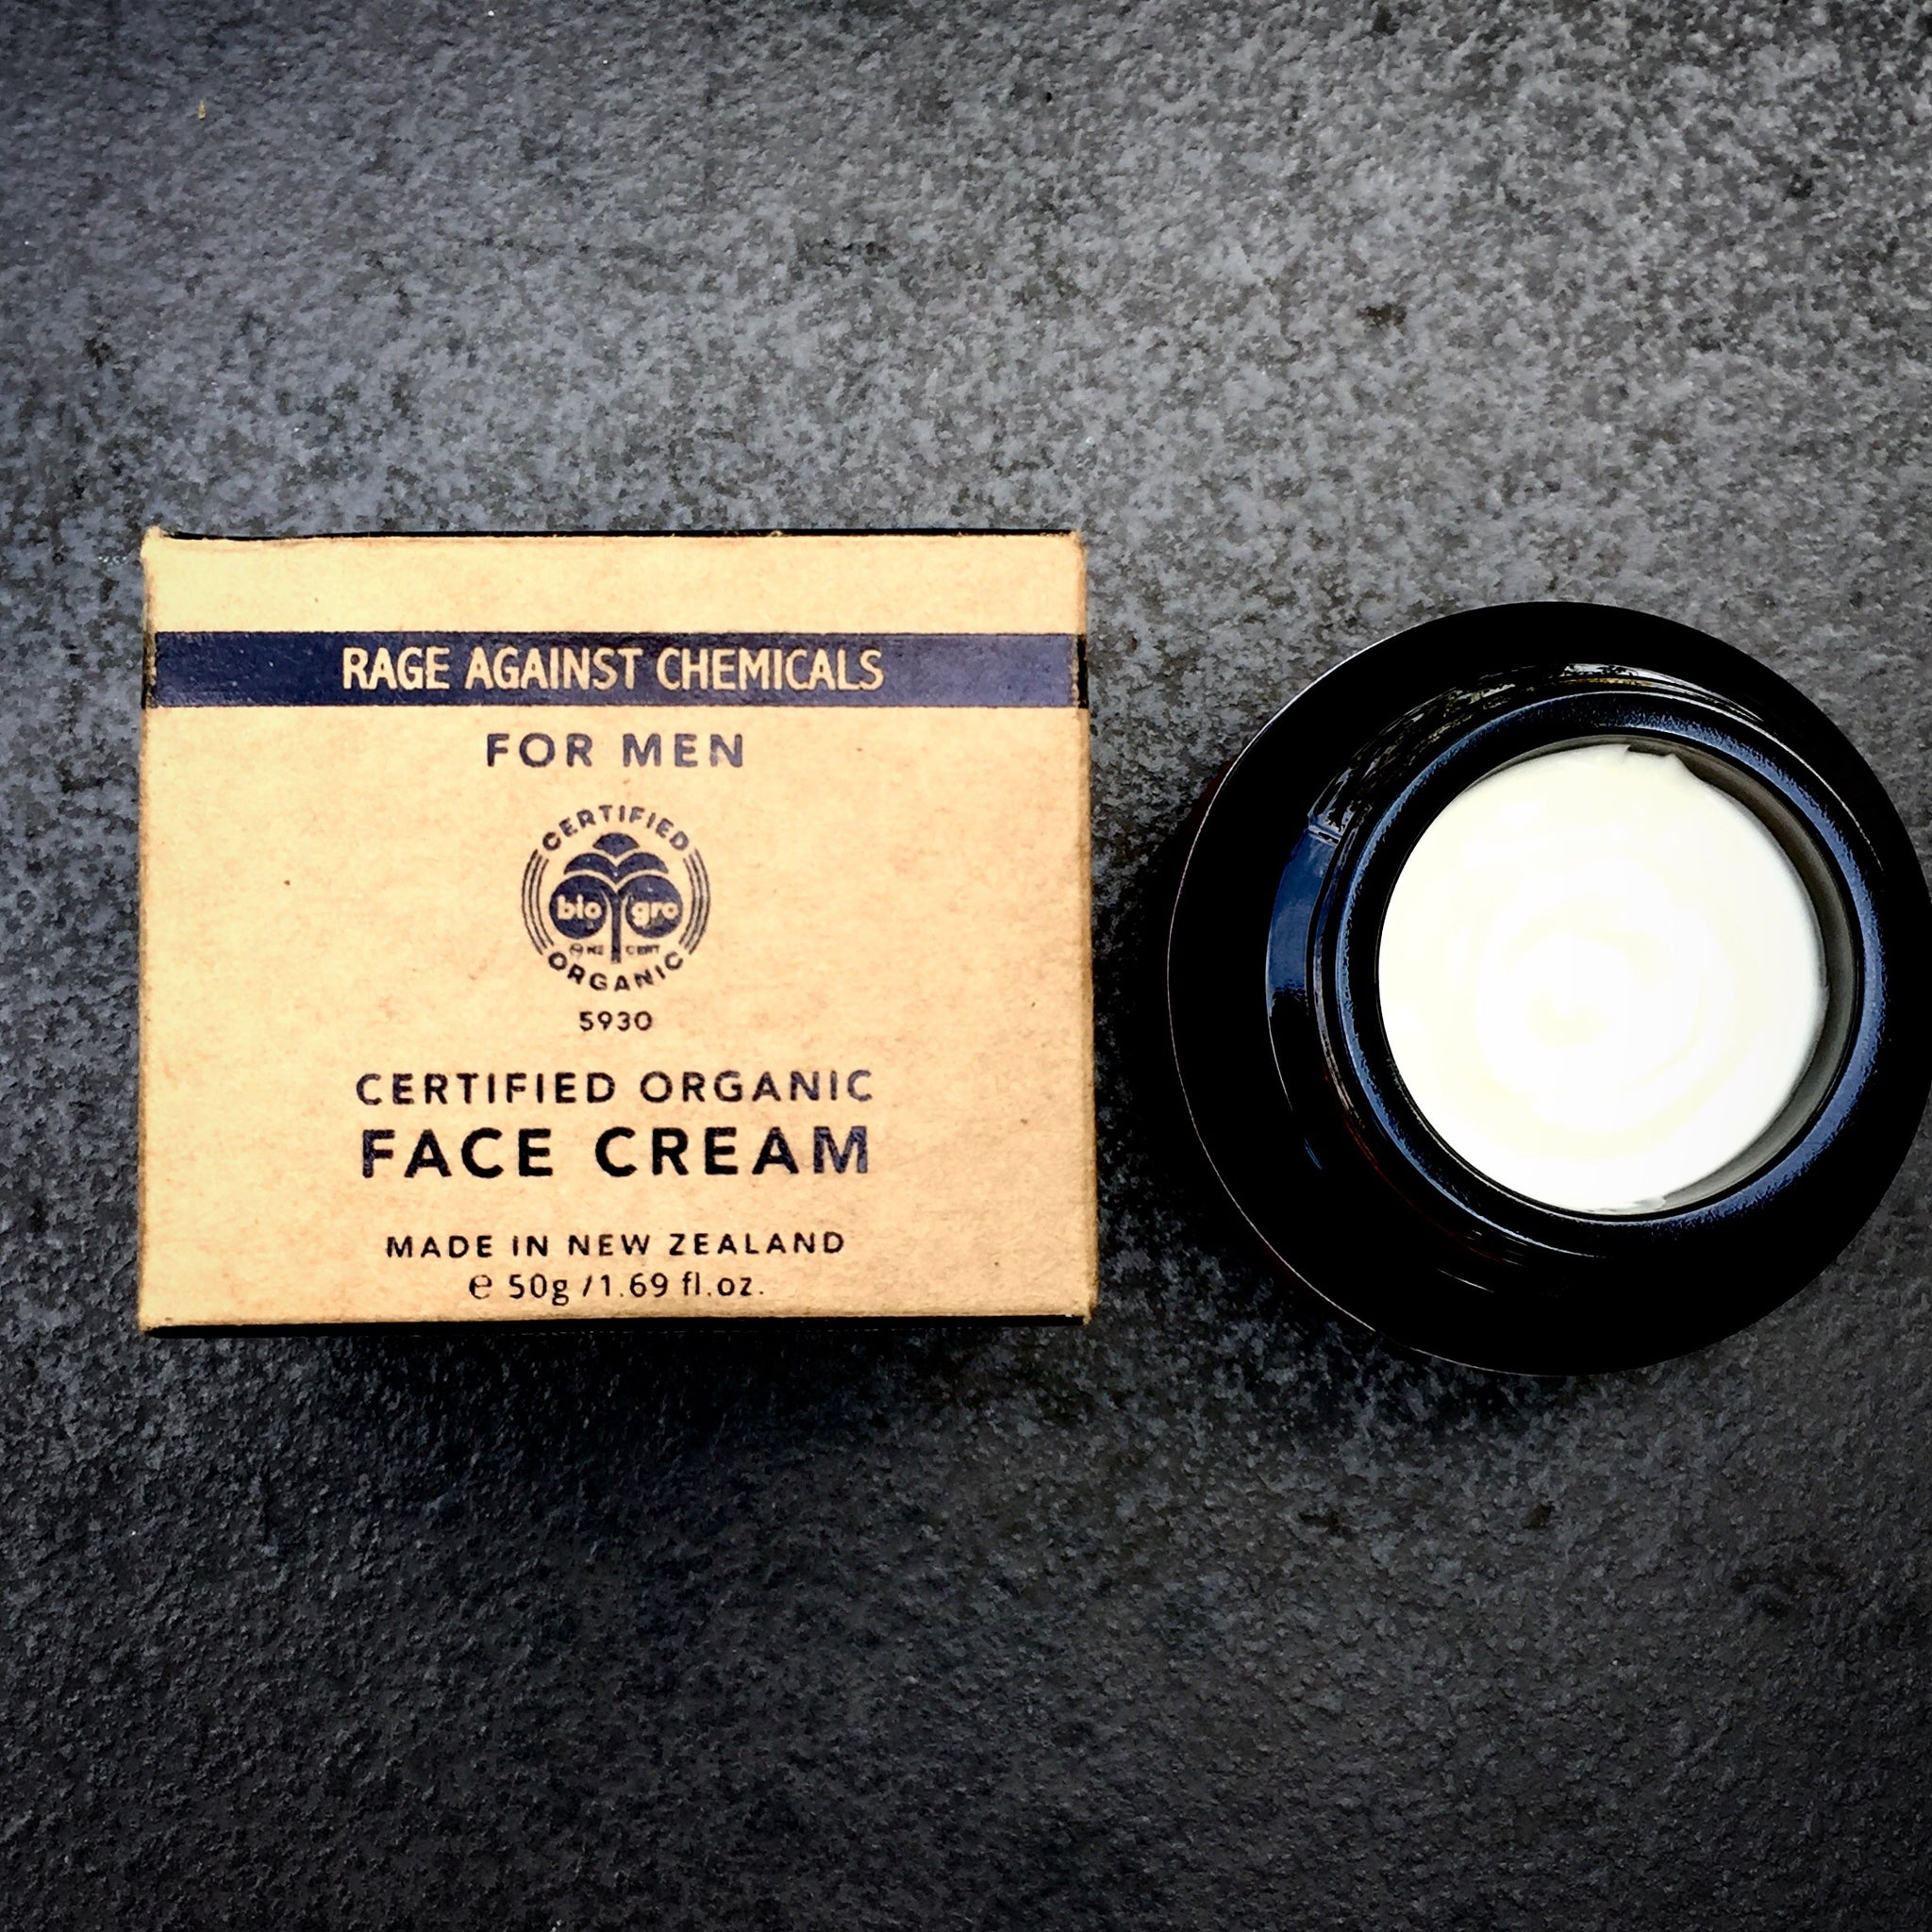 Face Cream for Men - Organic Moisturiser - Rage Against Chemicals - International Award Winning